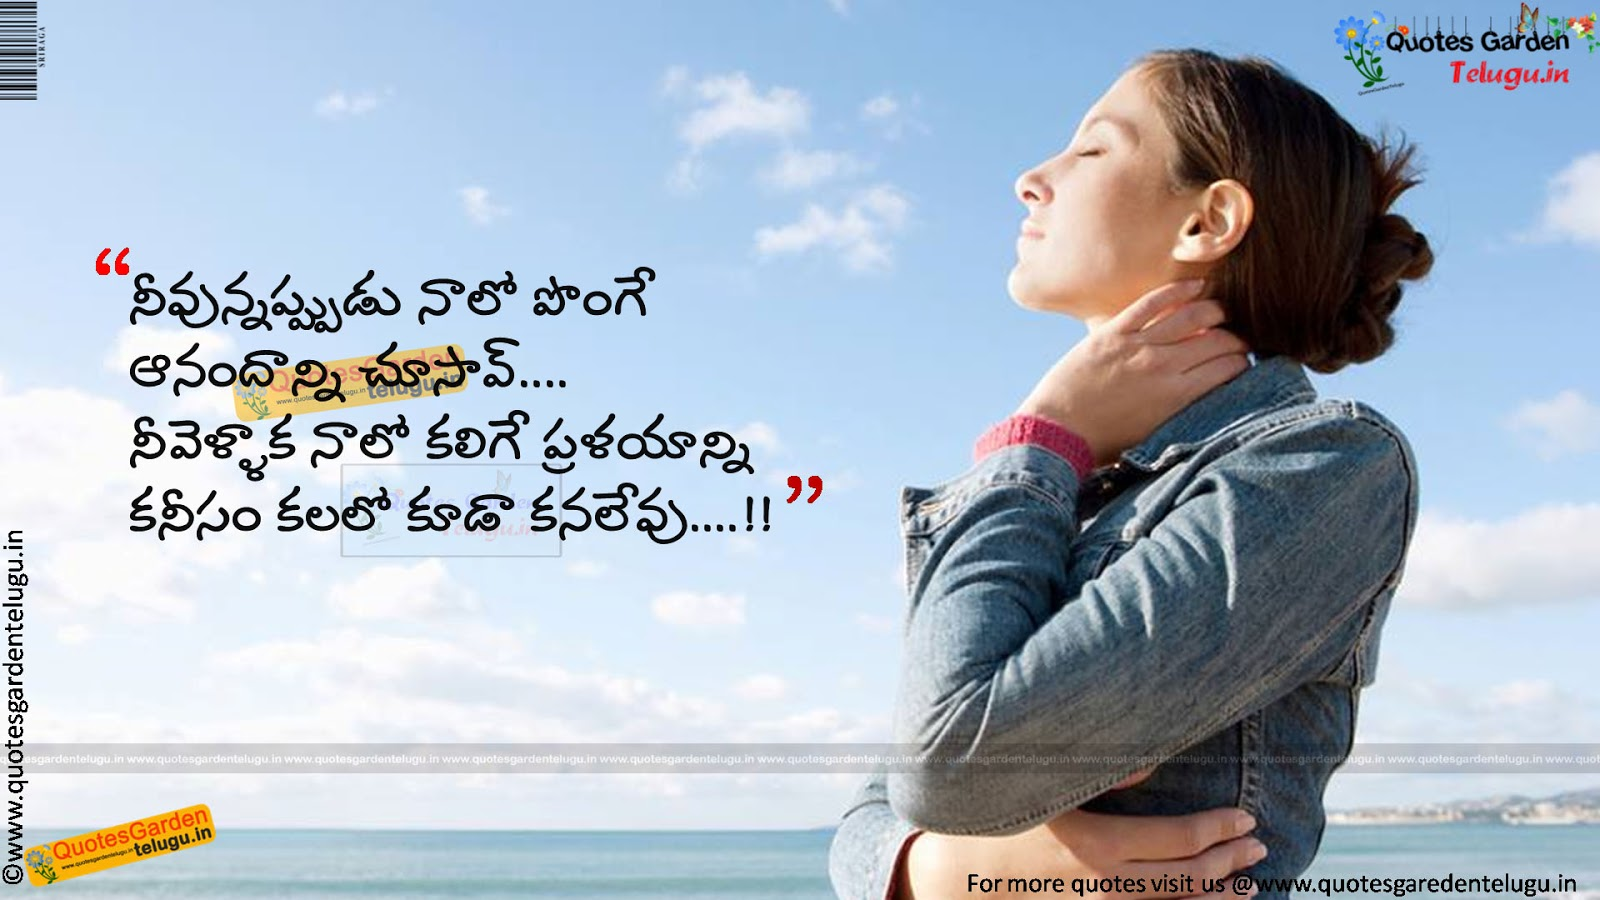 heart touching telugu love quotes 1158 quotes garden